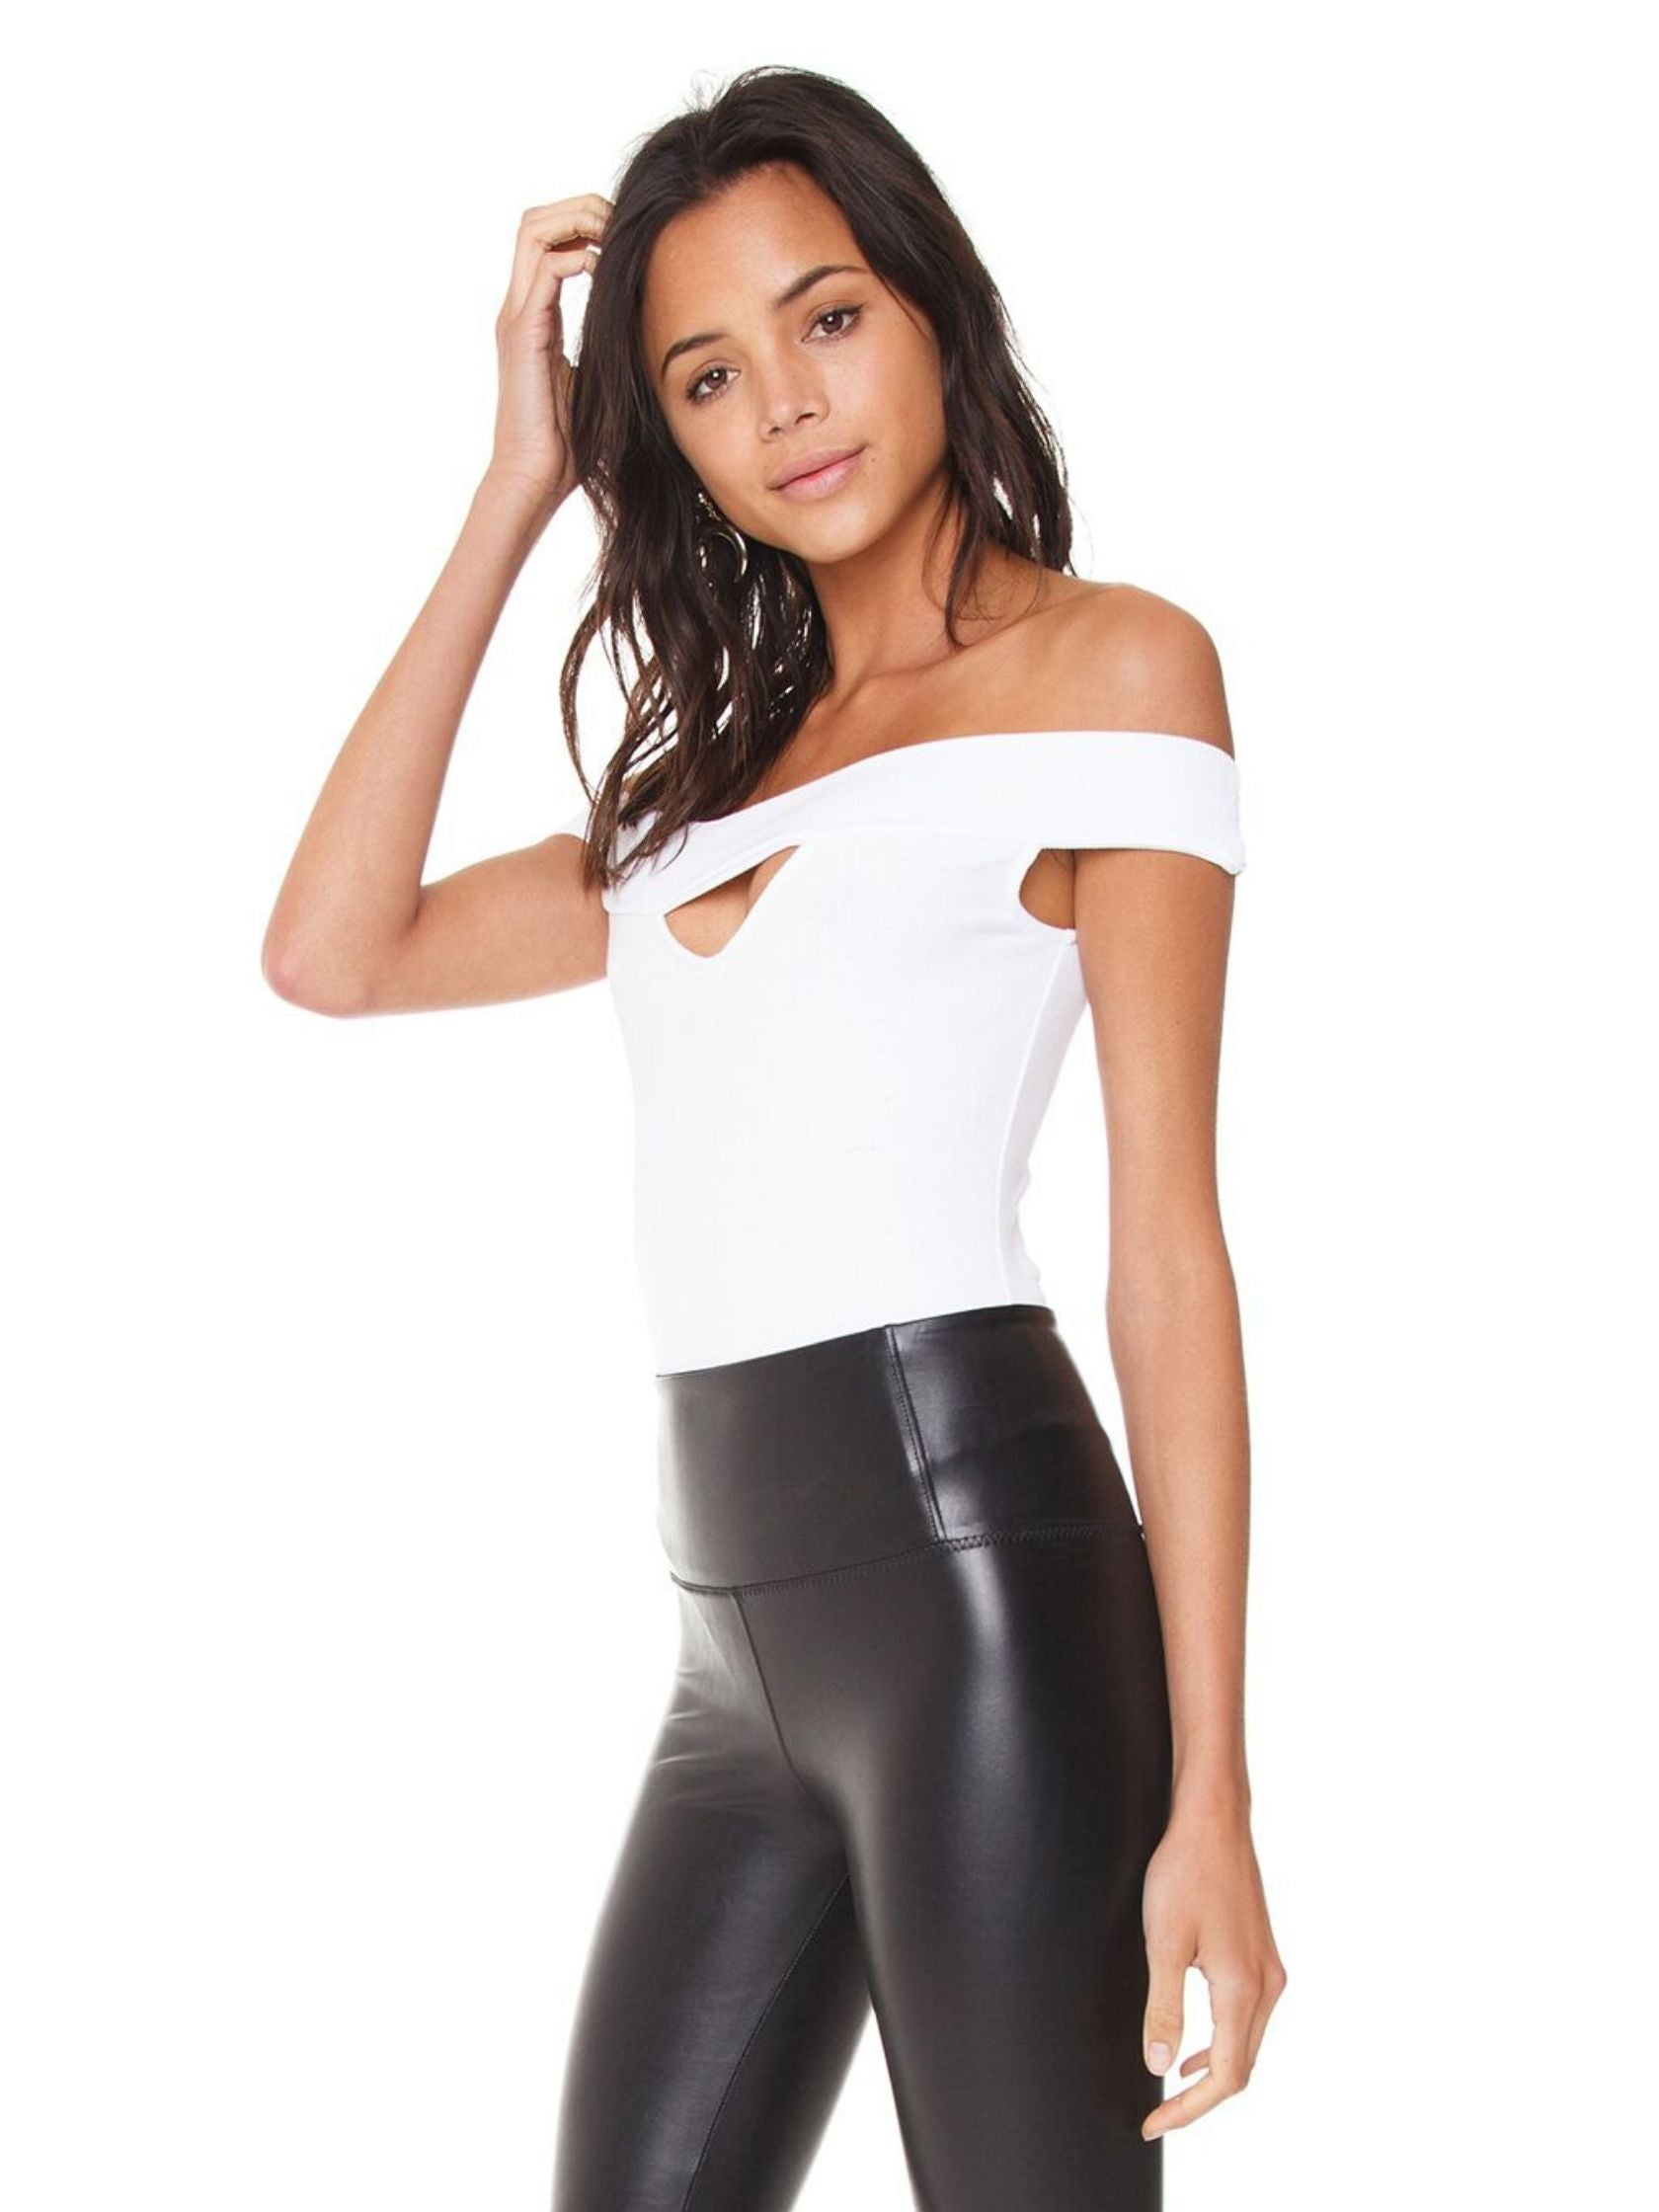 Women wearing a bodysuit rental from BB Dakota called Joplin Off The Shoulder Bodysuit